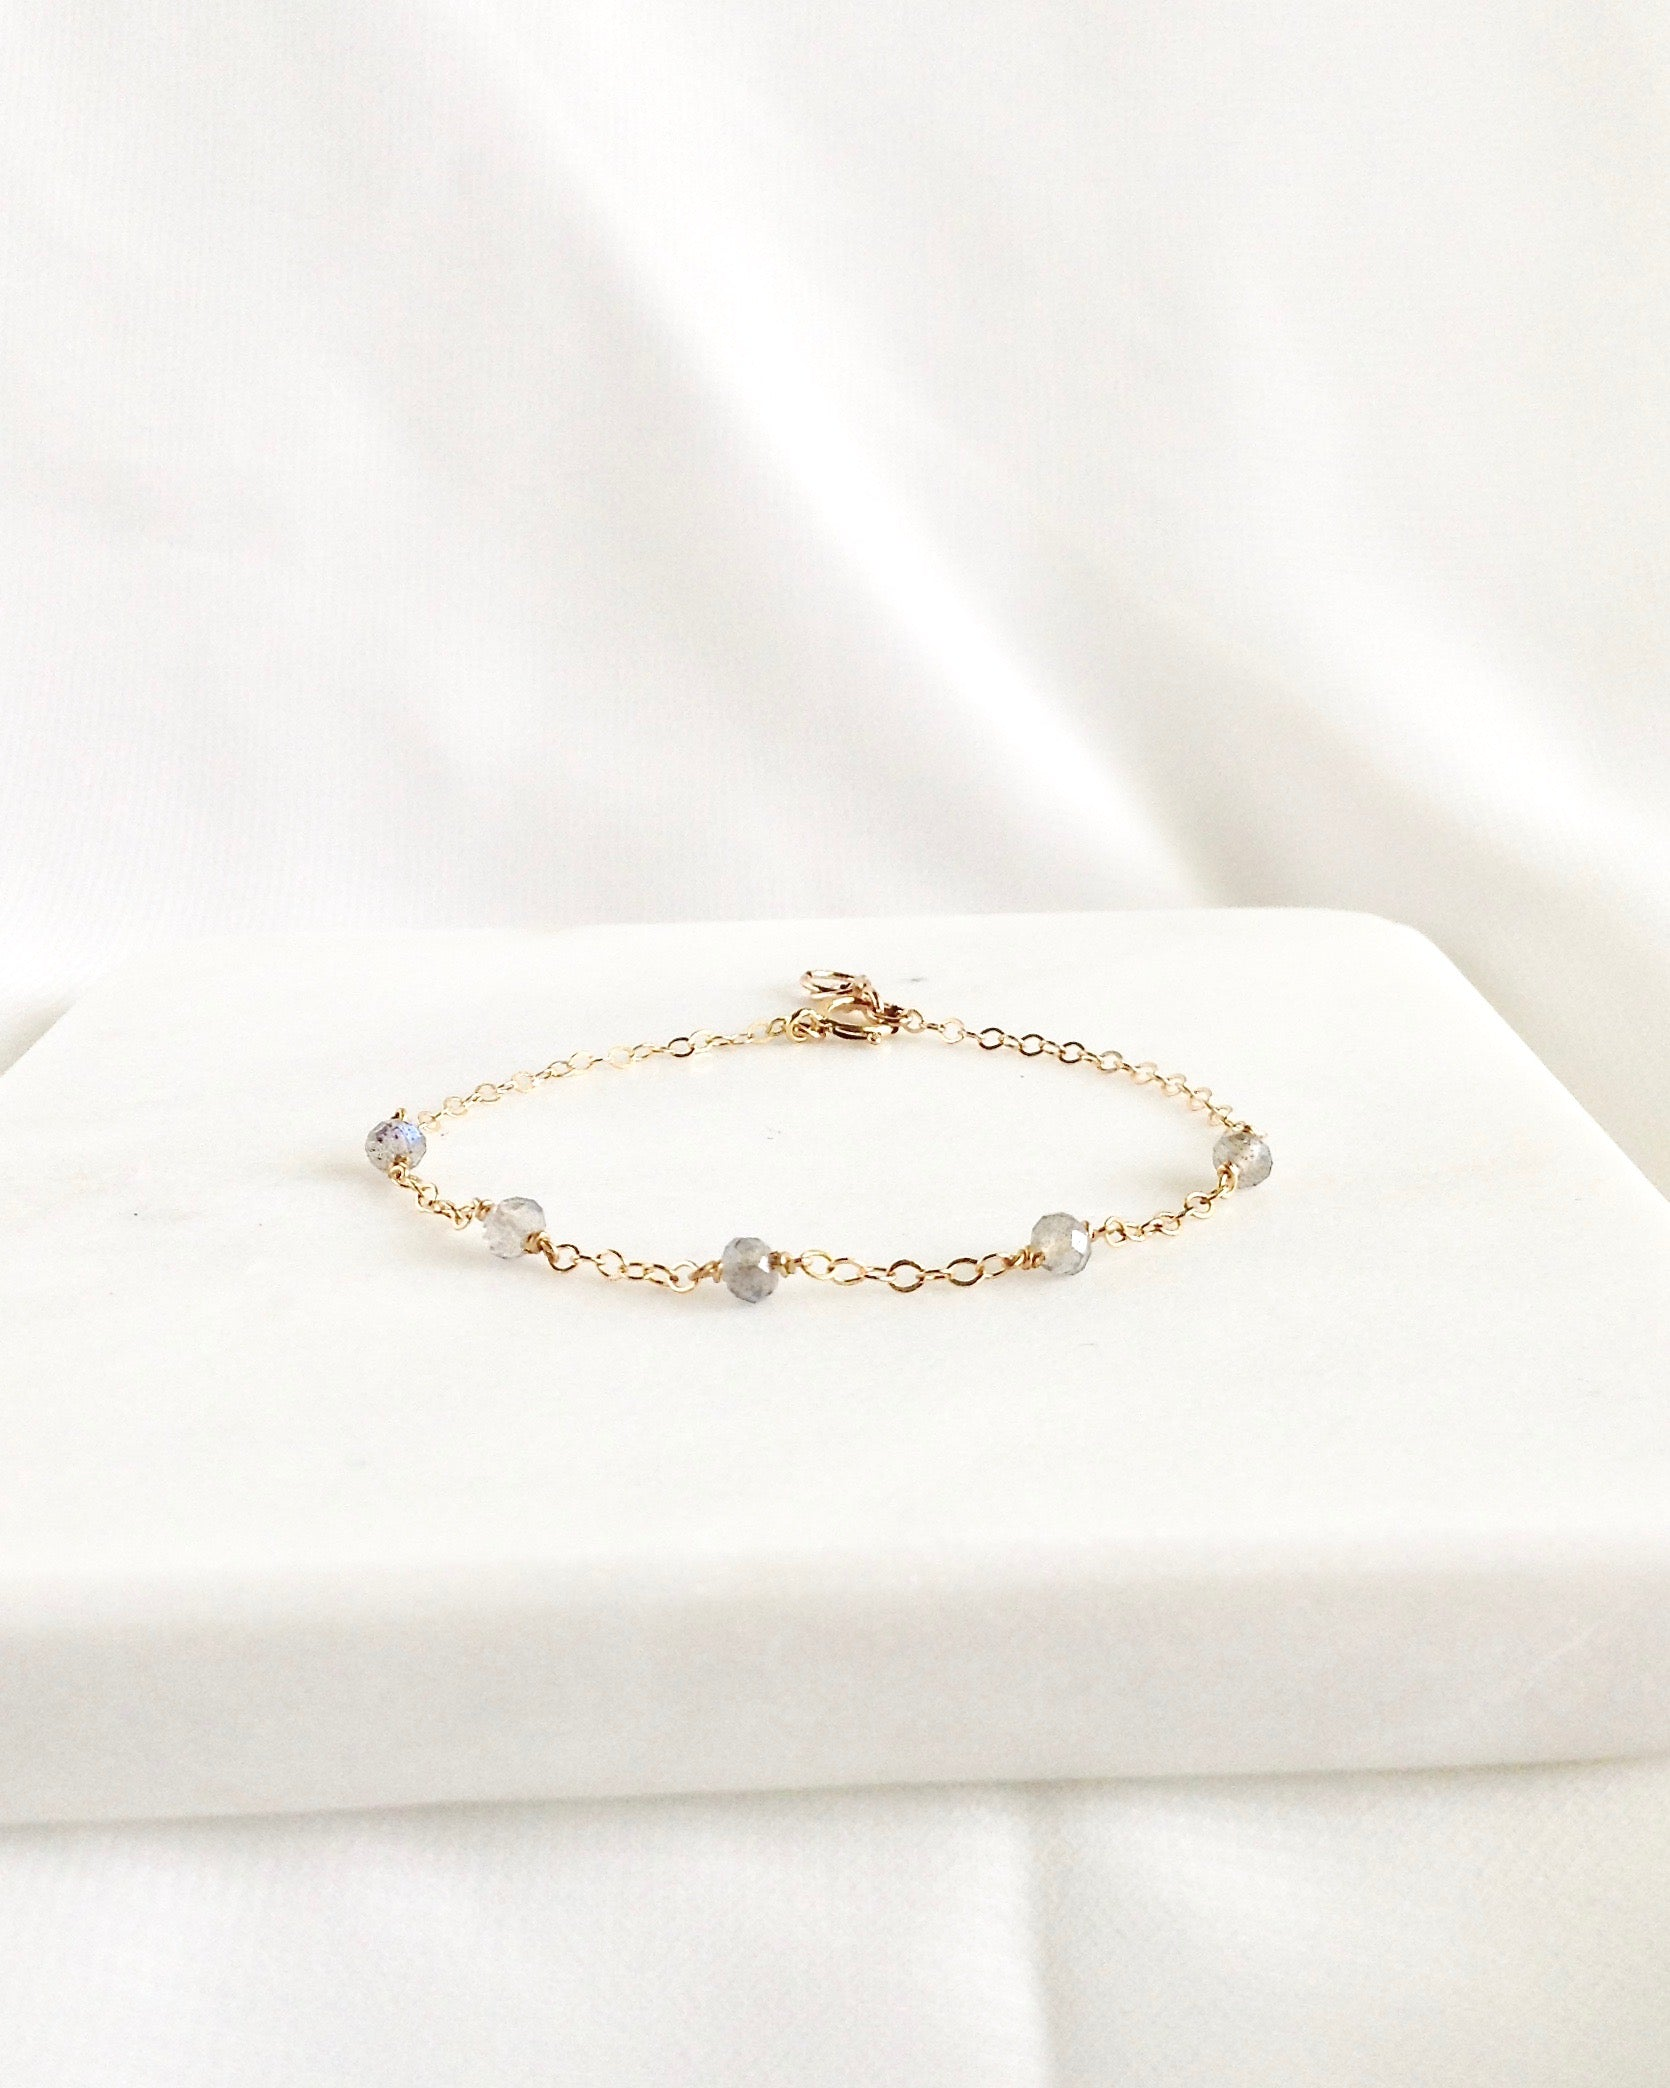 Labradorite Dainty Gemstone Bracelet in Gold Filled or Sterling Silver | IB Jewelry